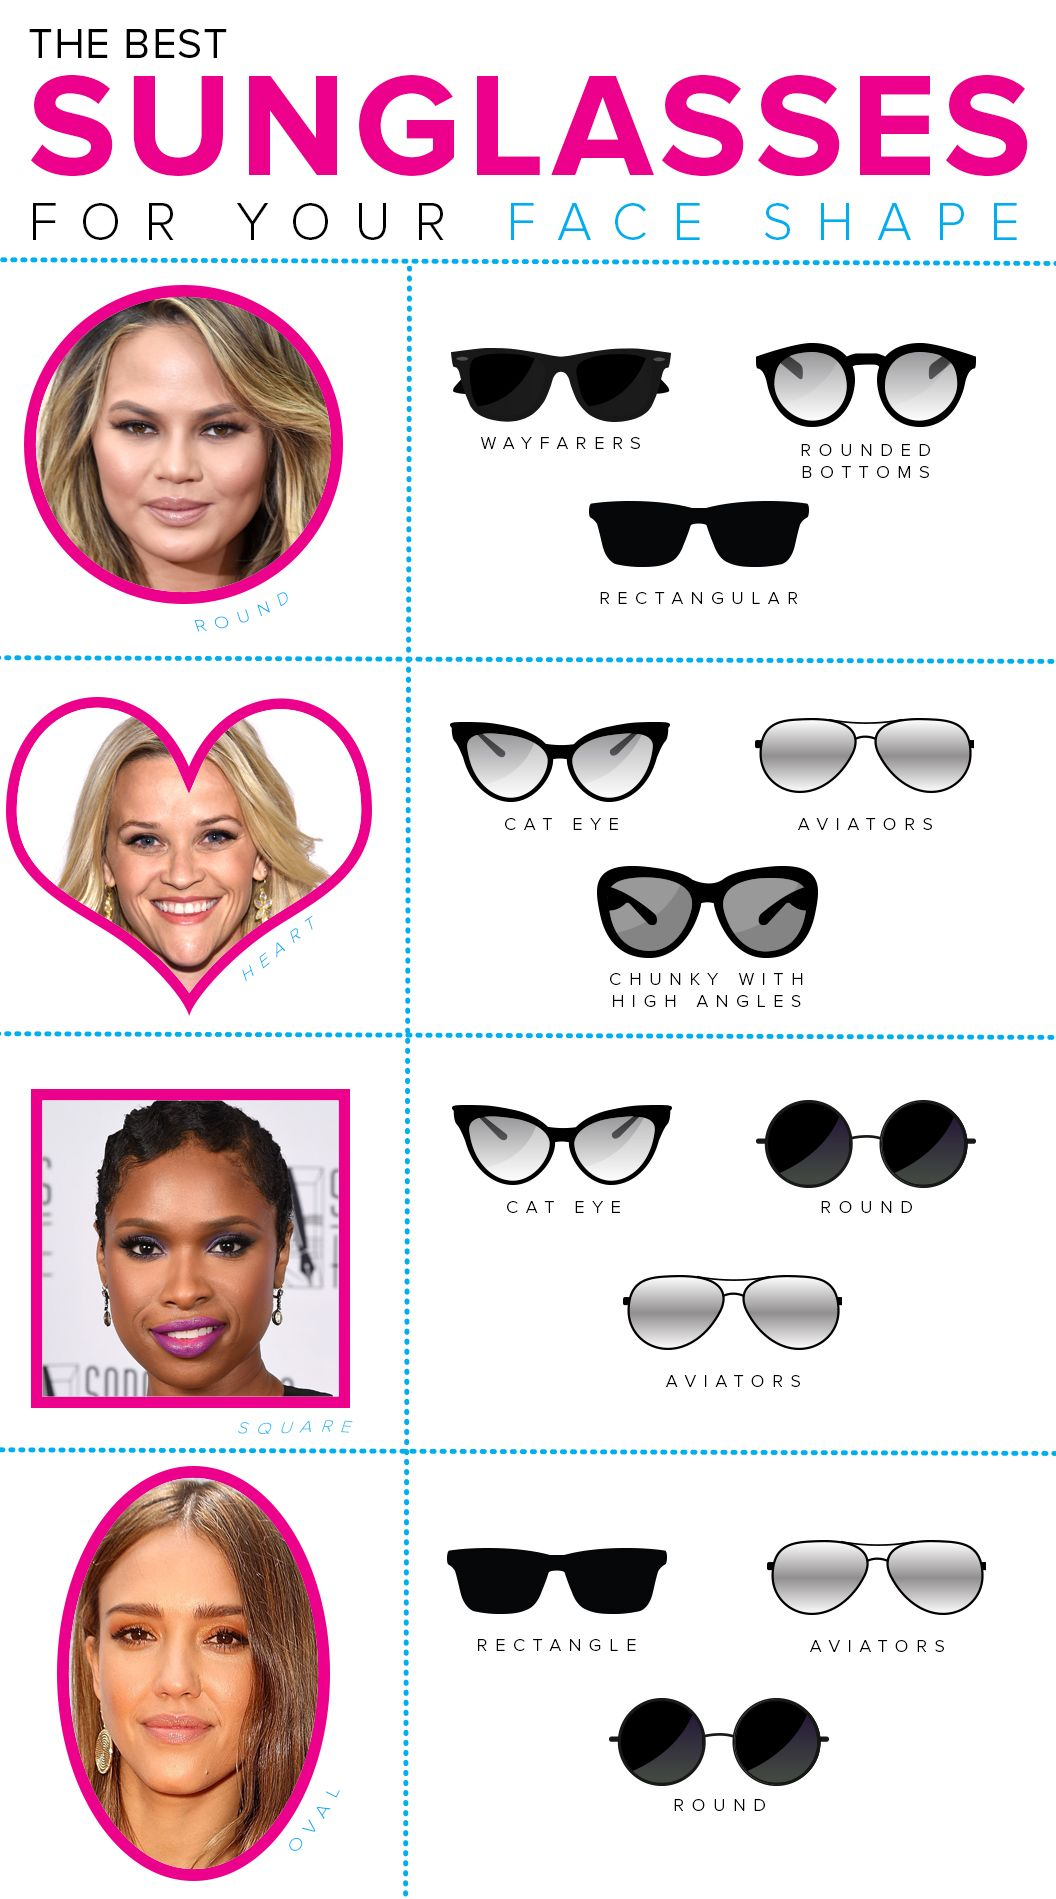 39b1ad86e4 This guide will help you find the best sunglasses for your face shape.  These sunglass styles will fit your face shape. There are tips to help make  the ...